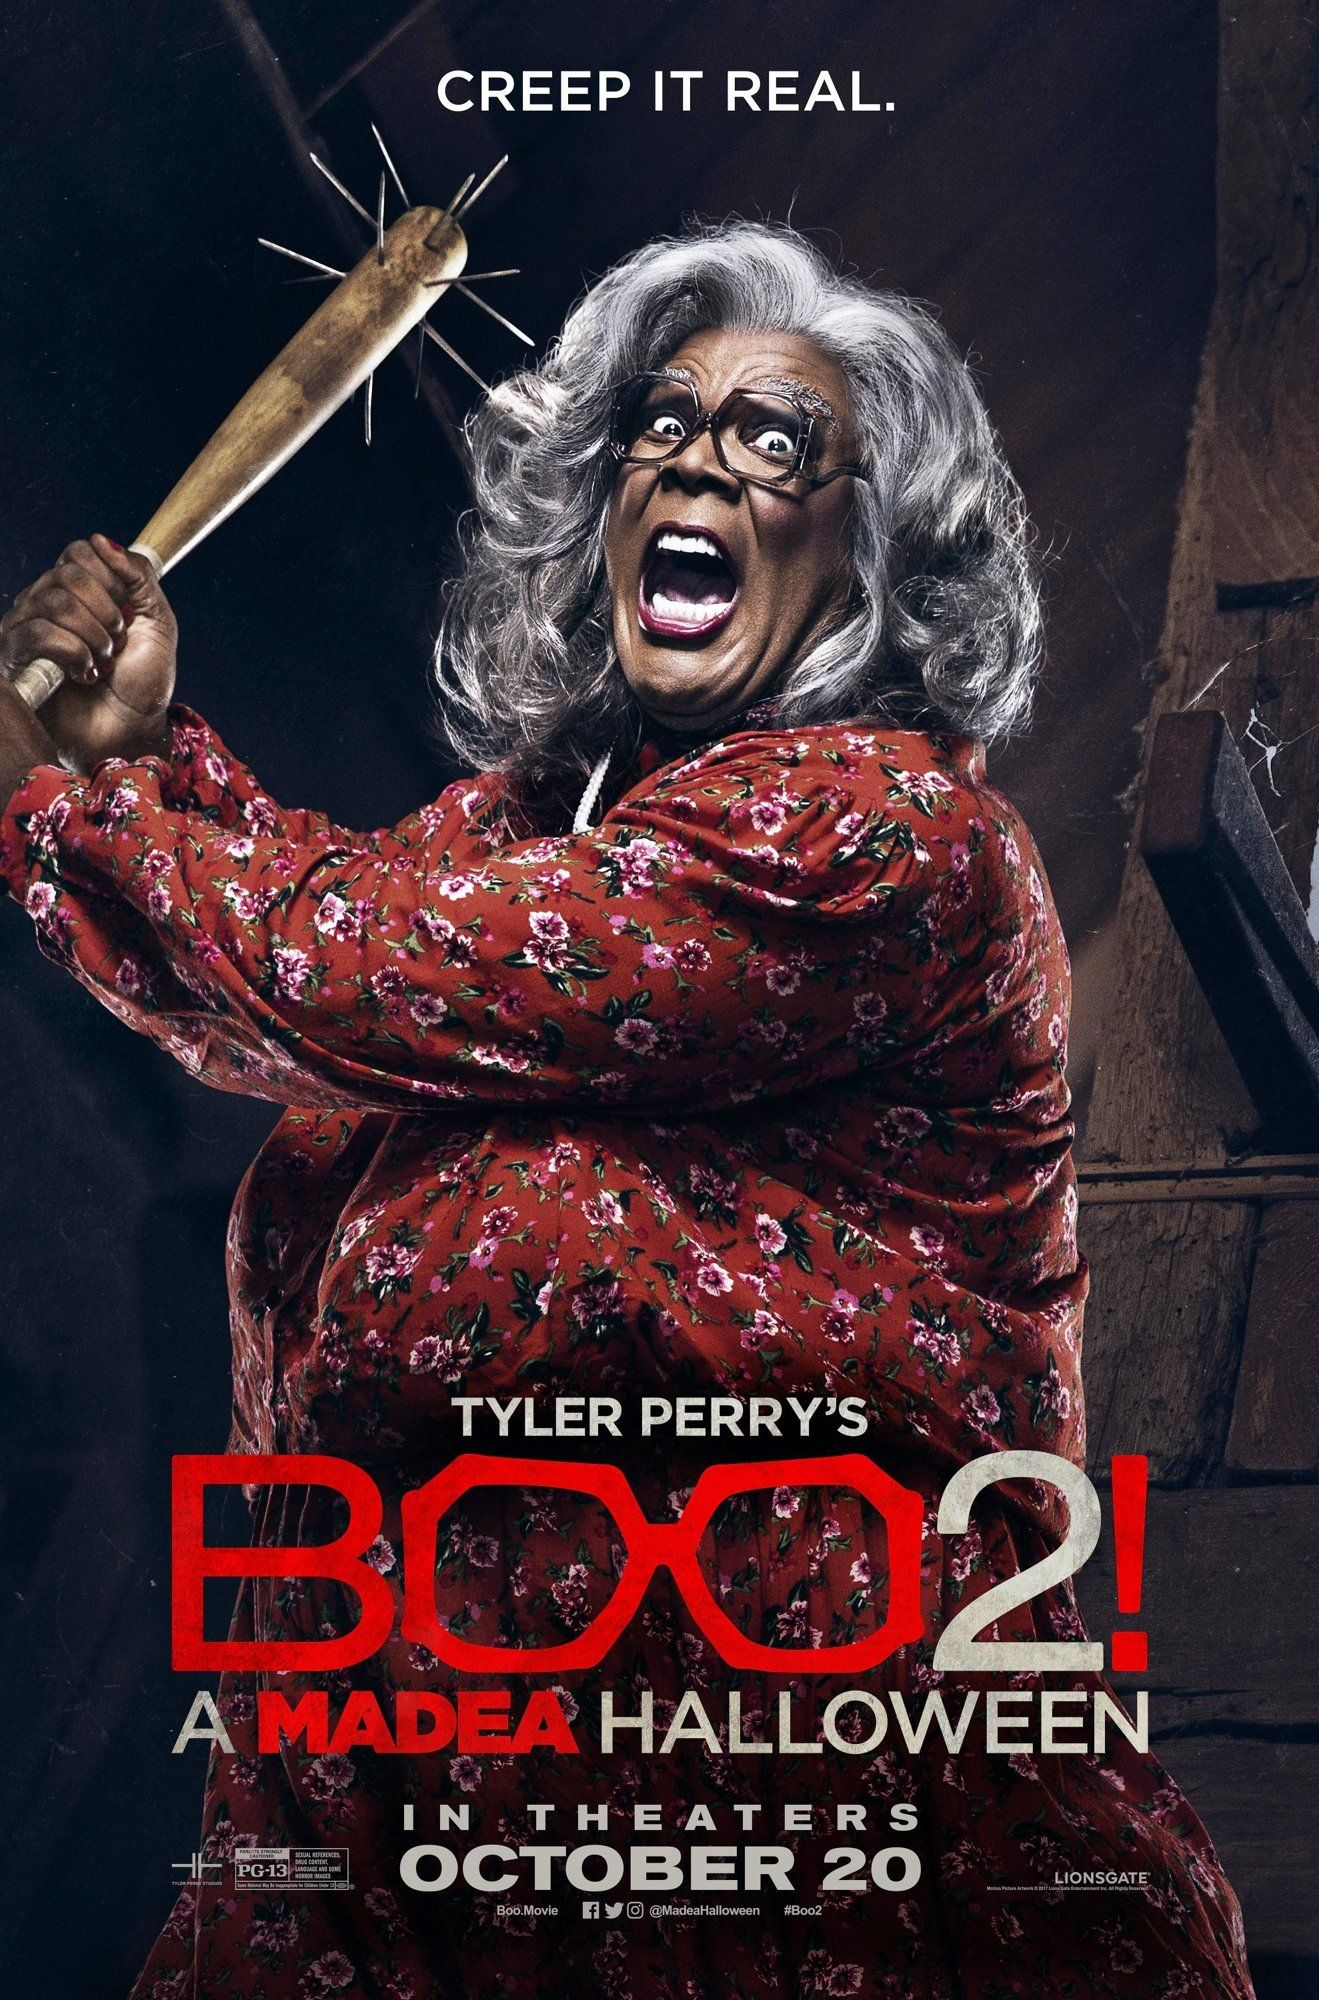 a madea halloween 2017 movie online free hd ready for download megashare